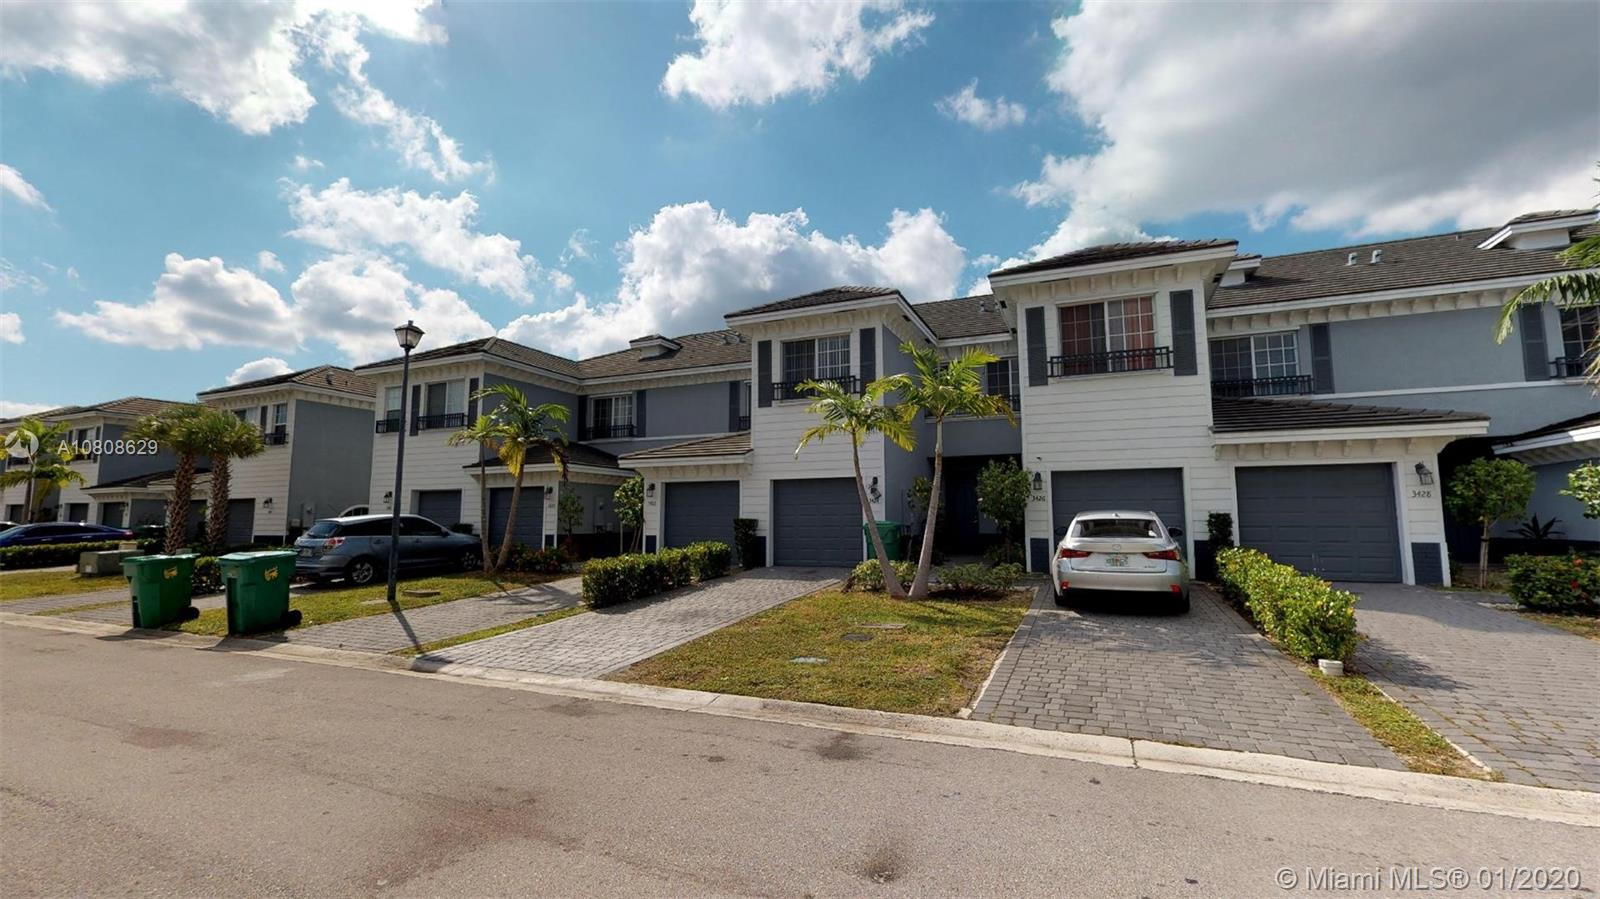 PROPERTY 2 BED /2.5 BATH TOWNHOUSE , MINUTES FROM SAWGRASS MALLl, FORT LAUDERDALE BEACH. AMENITIES INCLUDING A SWIMMING POOL , MEETING ROOMS, CHILDREN´S PLAYGROUND. GREAT OPPORTUNITY . HOA REQUIRED A CREDIT SCORE OF 600 OR ABOVE